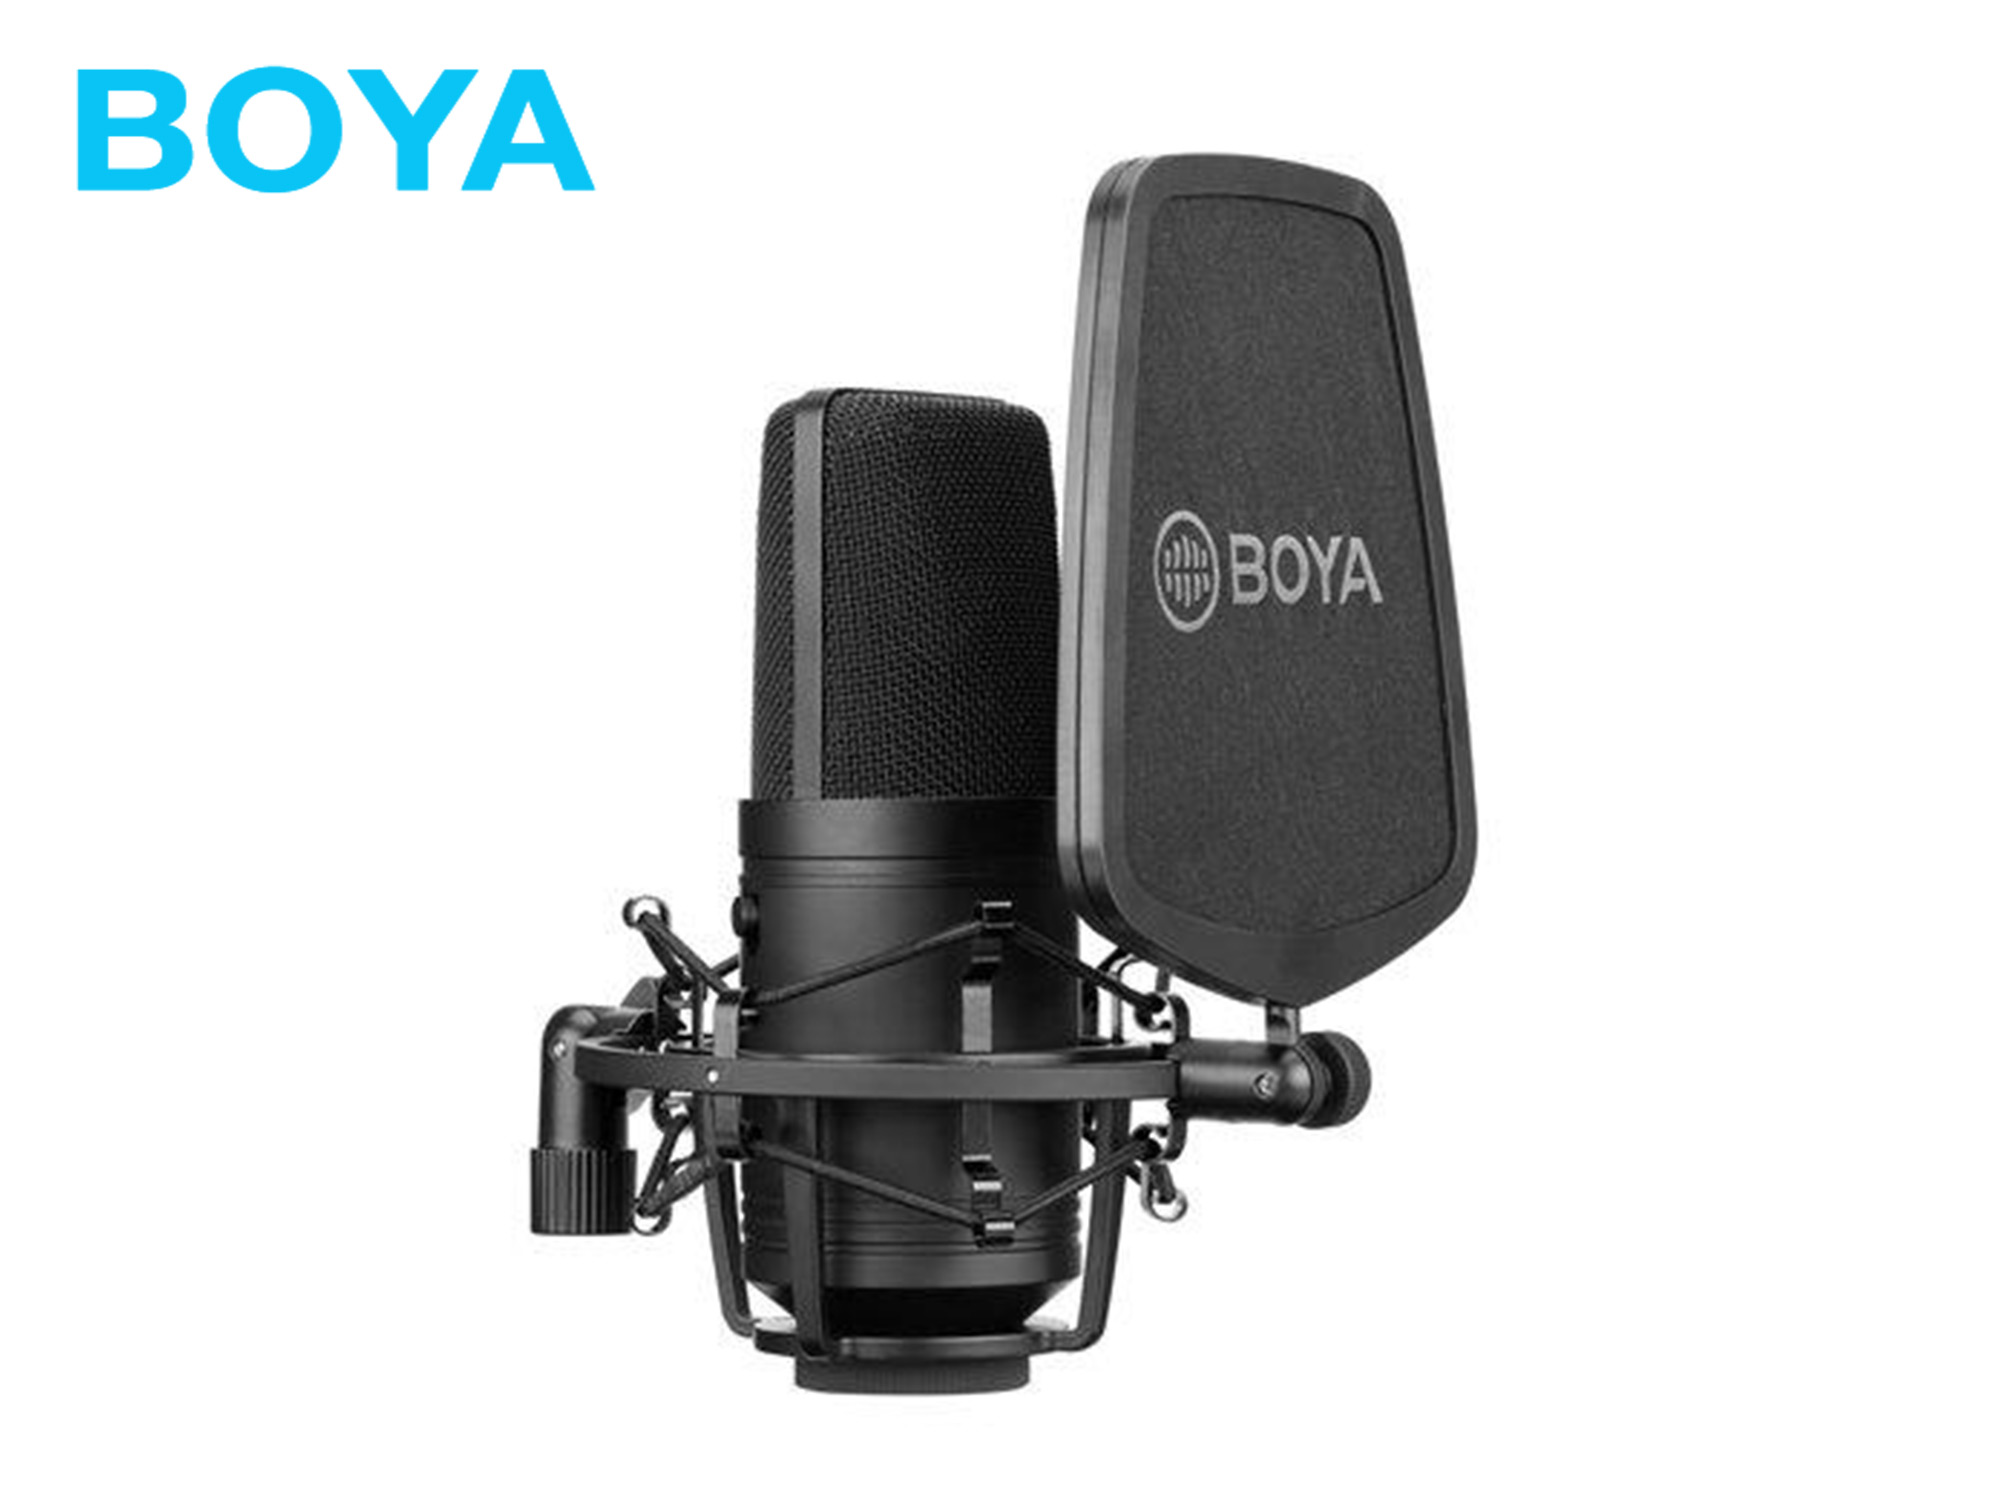 BOYA BY-M800 Large-Diaphragm Cardioid Condenser Microphone